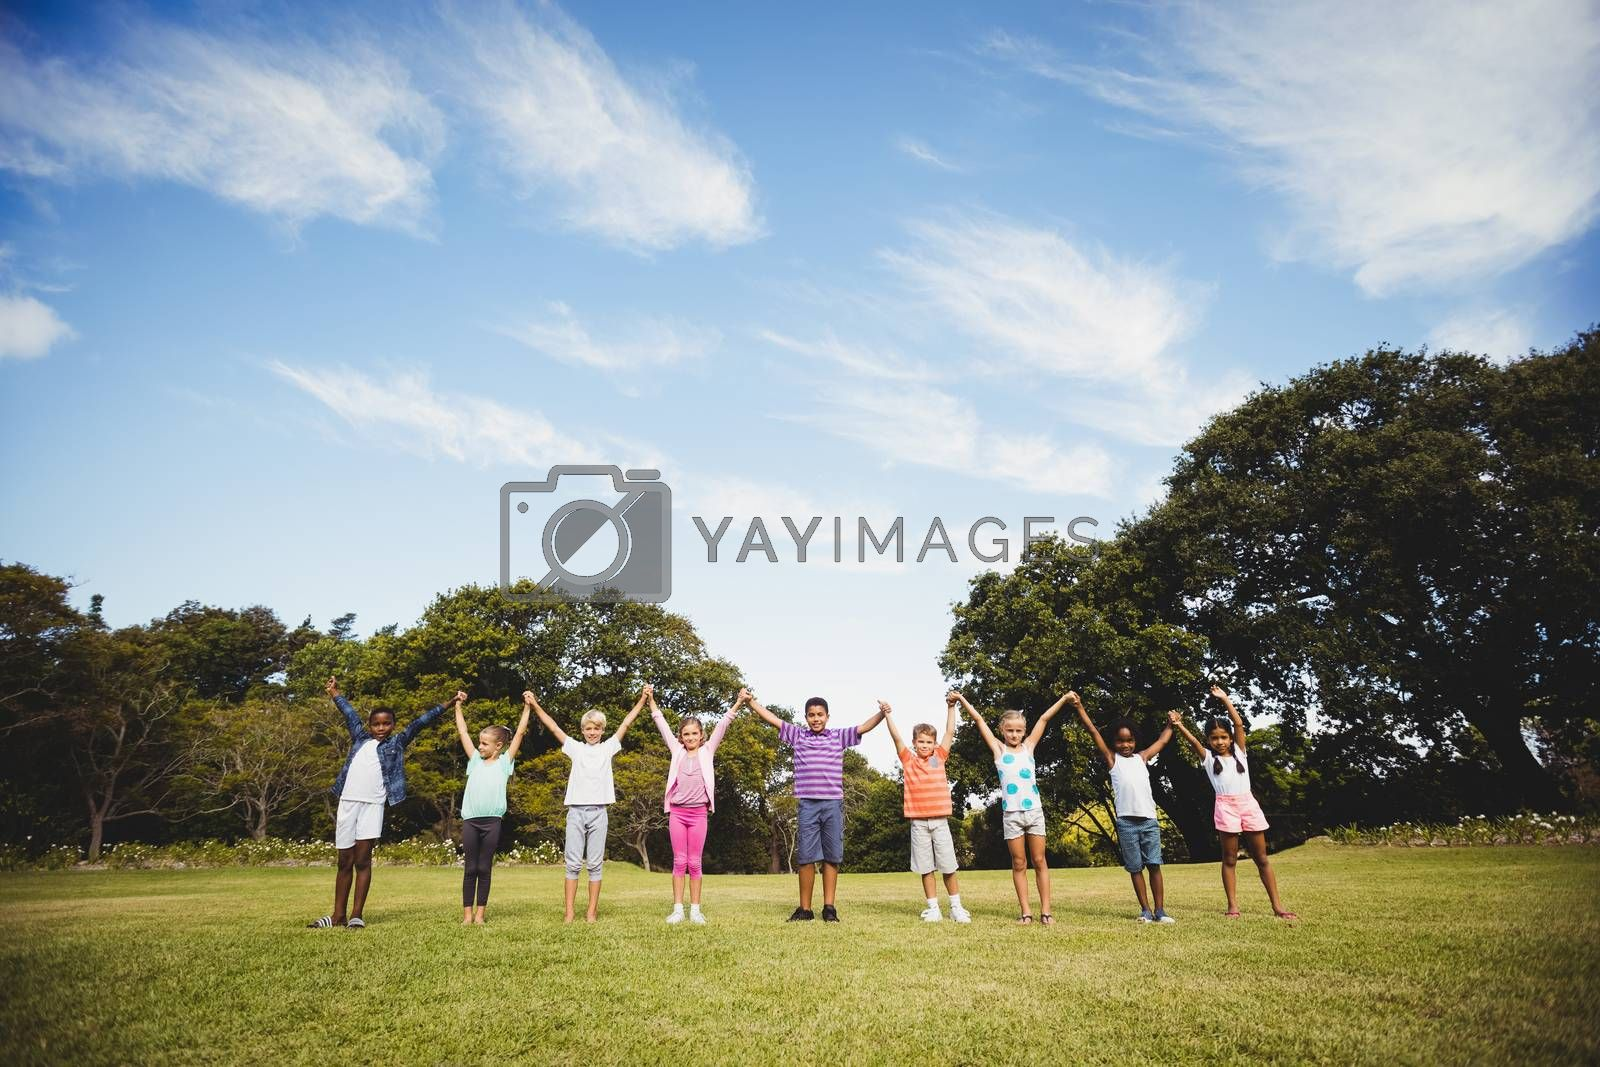 Royalty free image of Smiling kids posing together during a sunny day by Wavebreakmedia